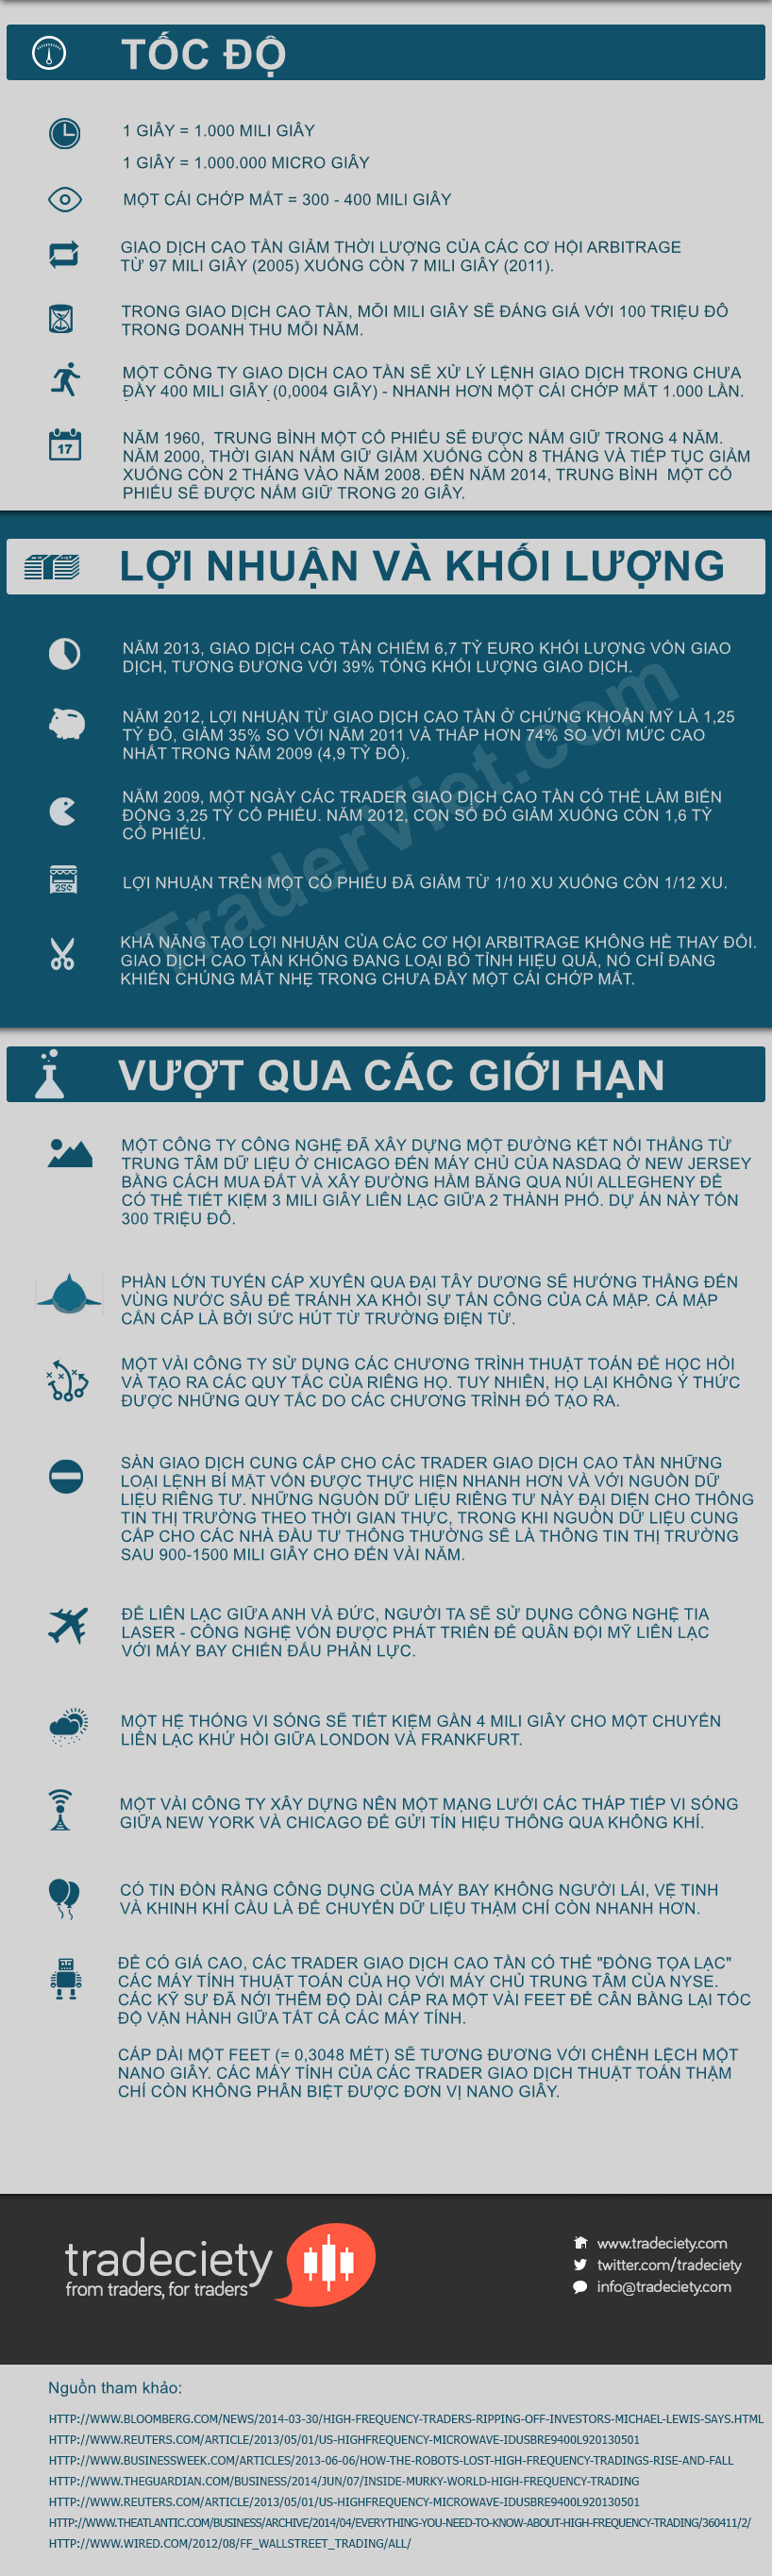 Mo-loi-tu-duy-voi-20-su-that-bat-ngo-ve-giao-dich-cao-tan-High-frequency-trading-TraderViet1.